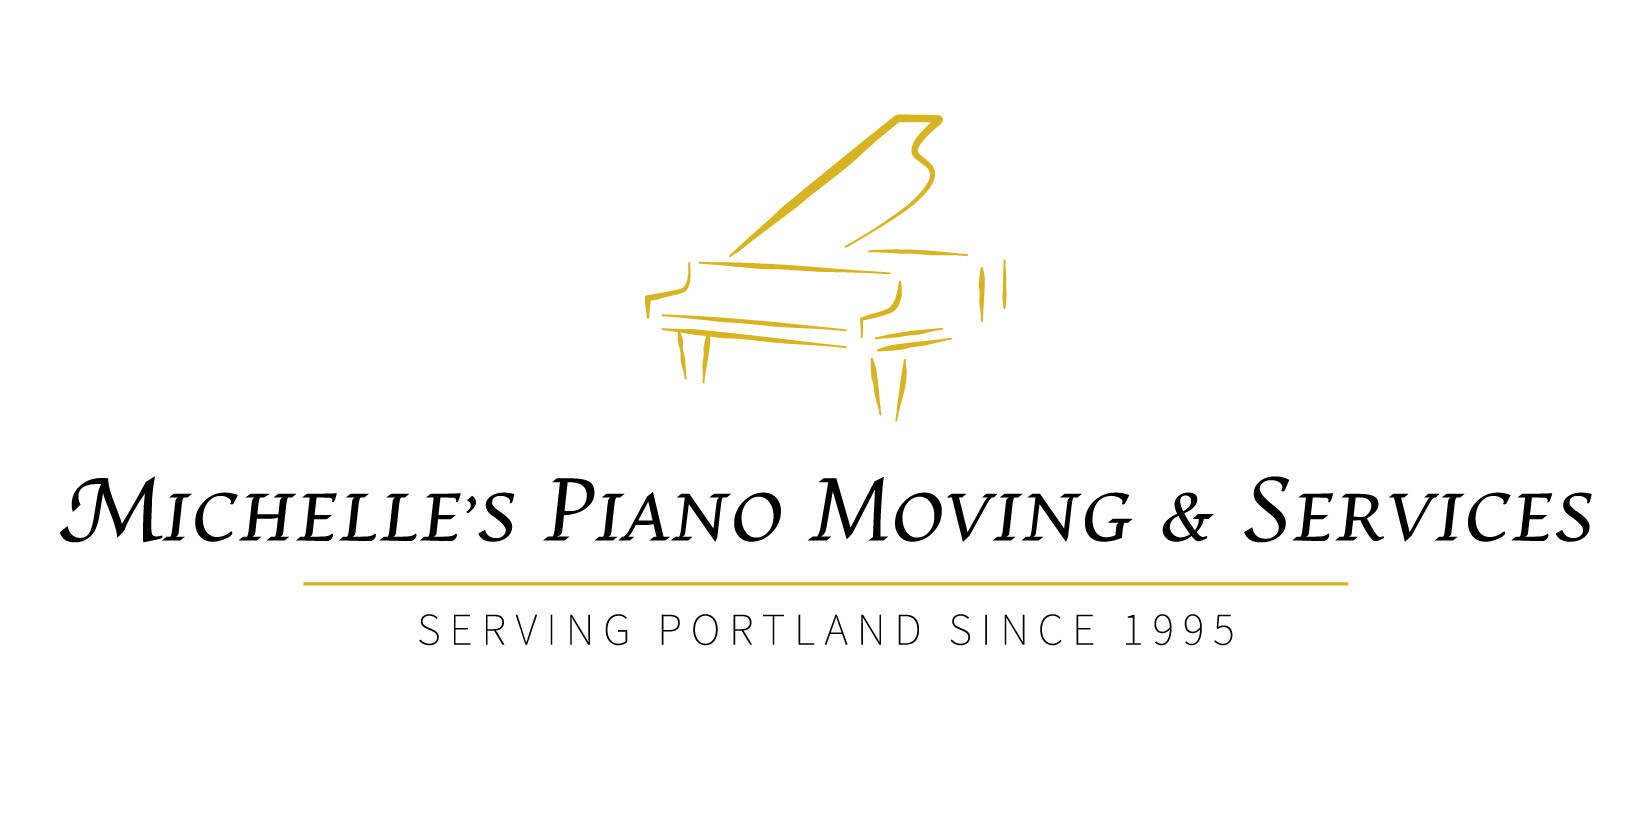 Piano Moving and Services